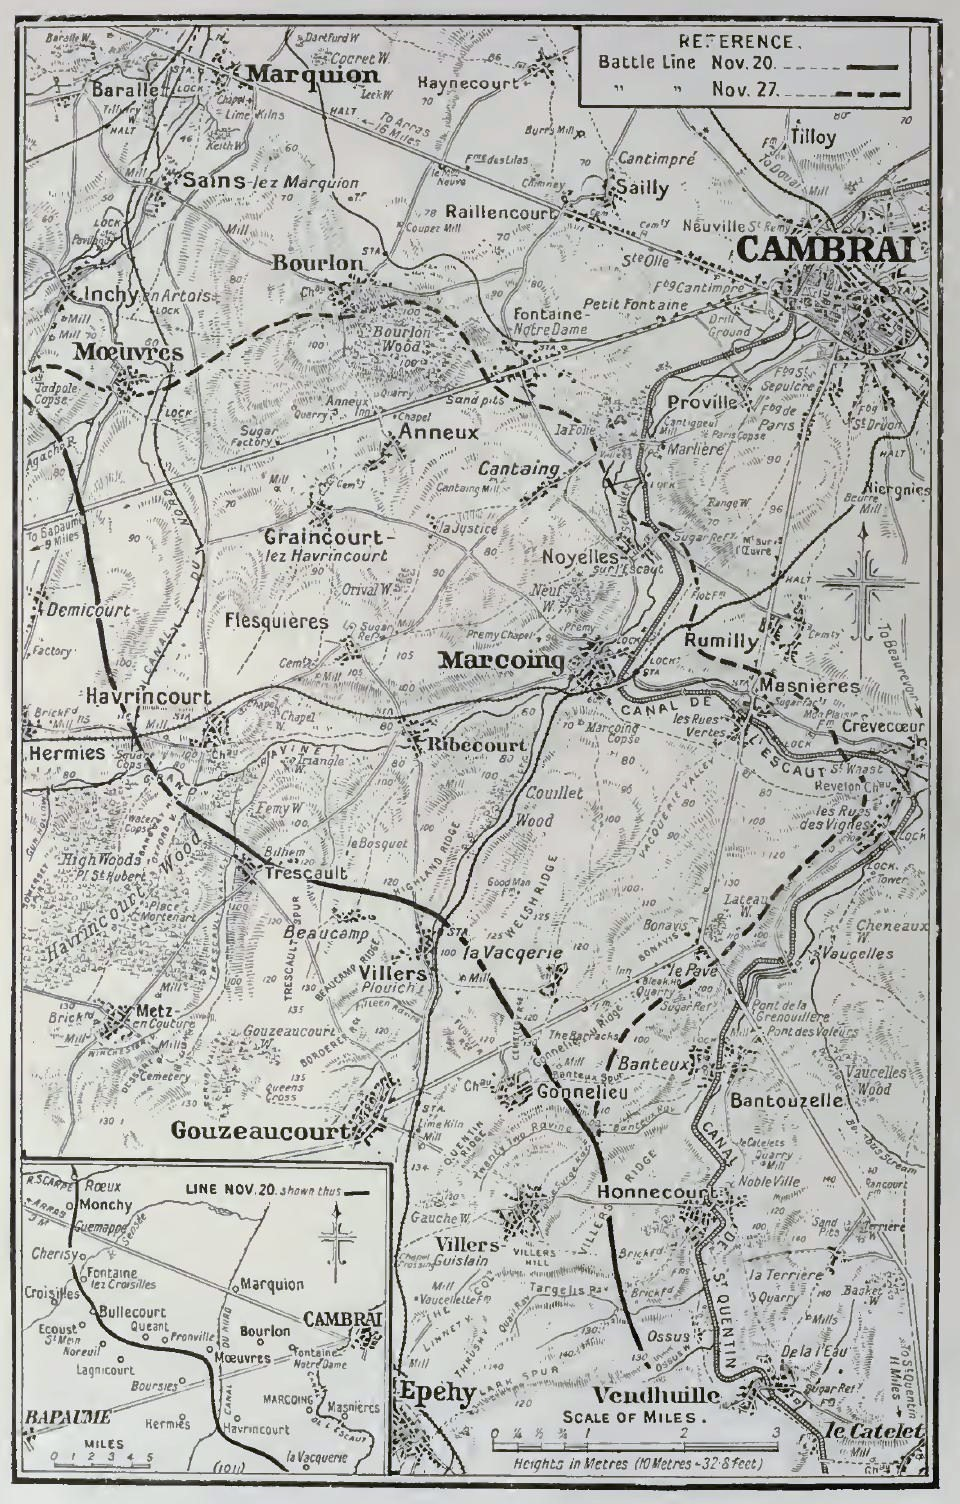 1917 map of the Cambrai area